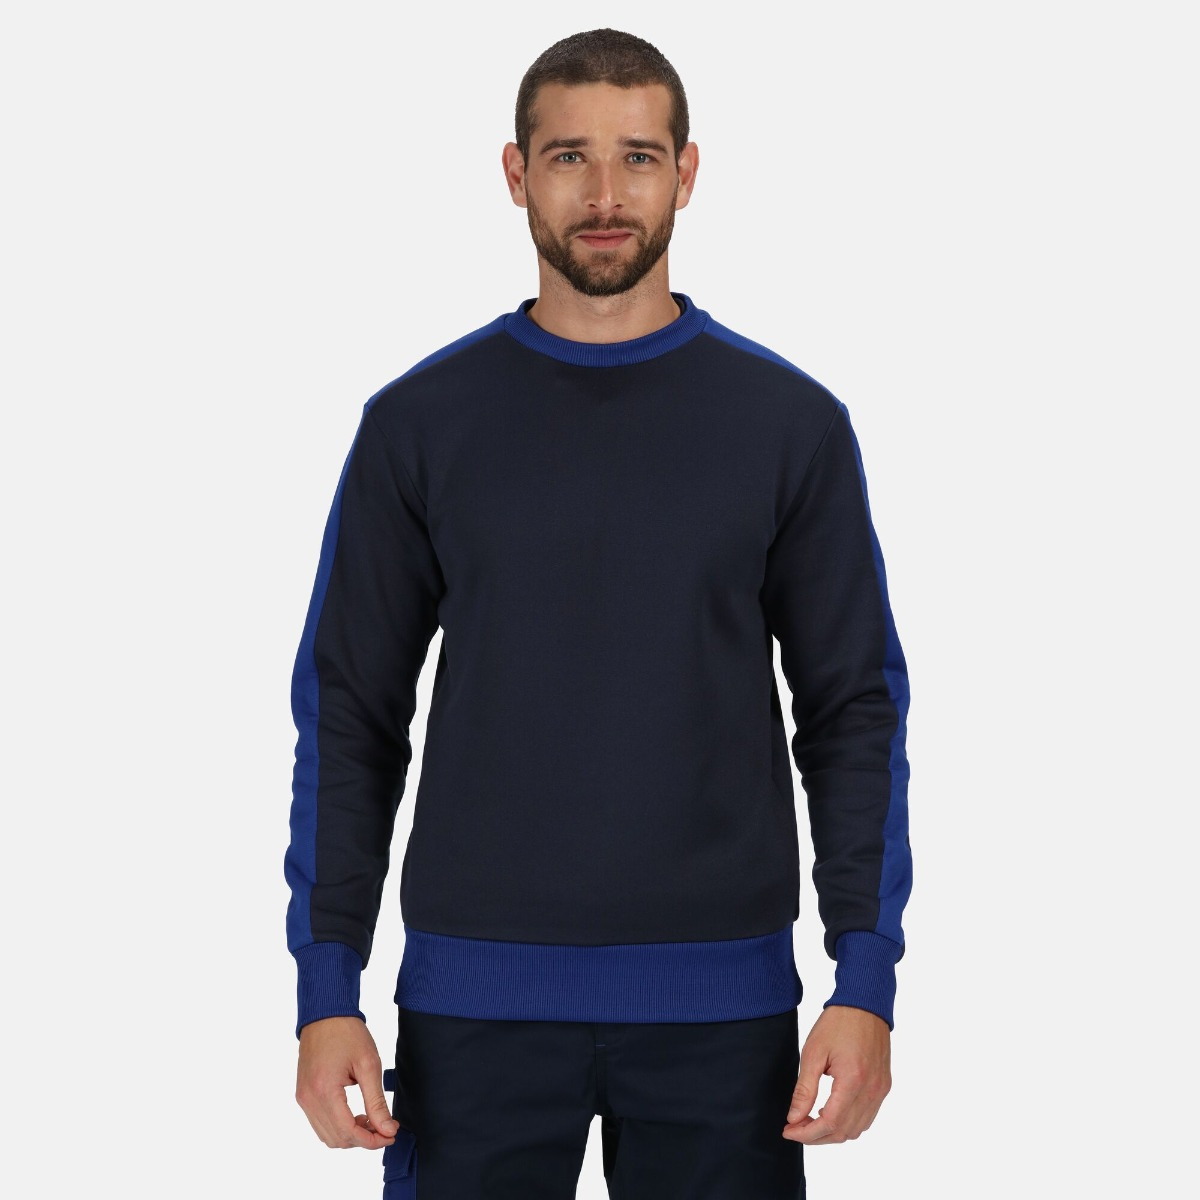 Regatta Contrast Crew Neck Sweater, Navy/New Royal, Size L